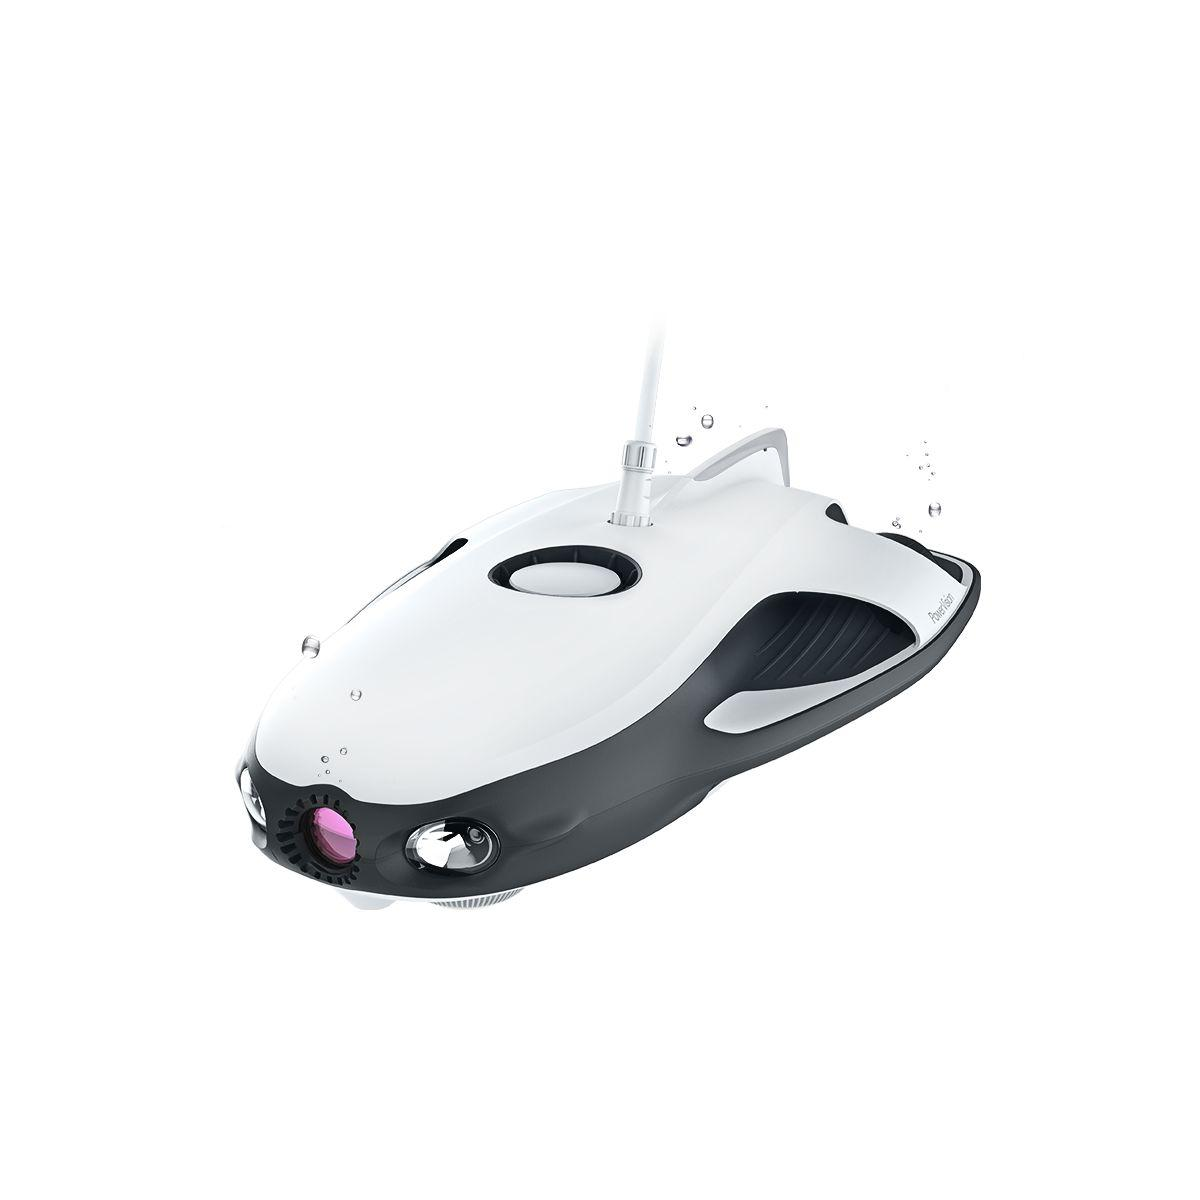 Drones powervision powerray wizard - 7% de remise imm�diate avec le code : noel7 (photo)